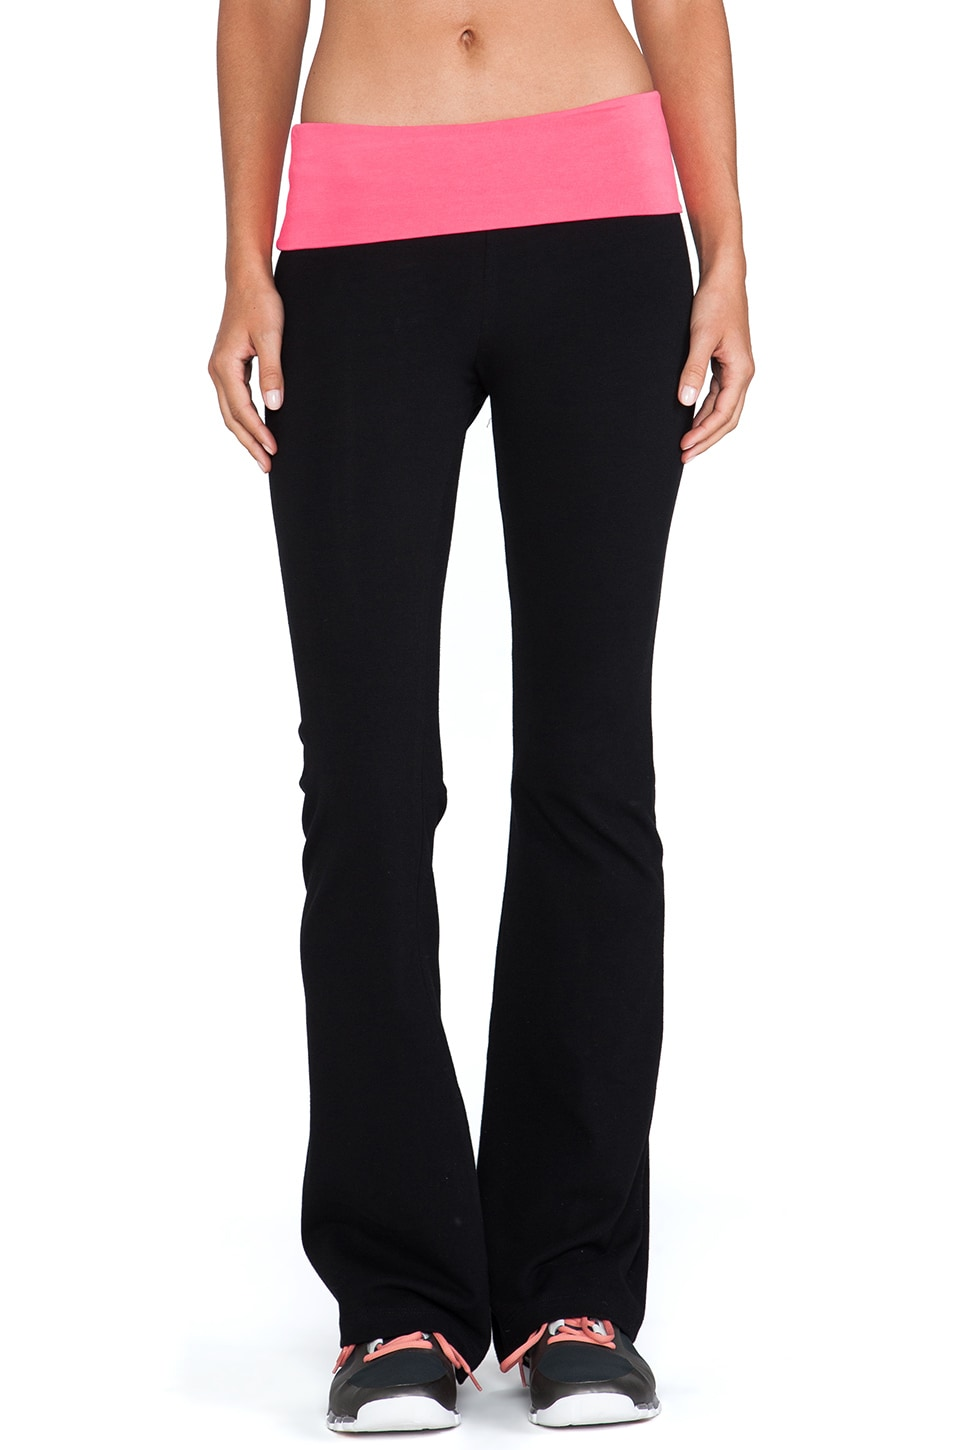 SOLOW Contrast Fold Over Pant in Black & Electric